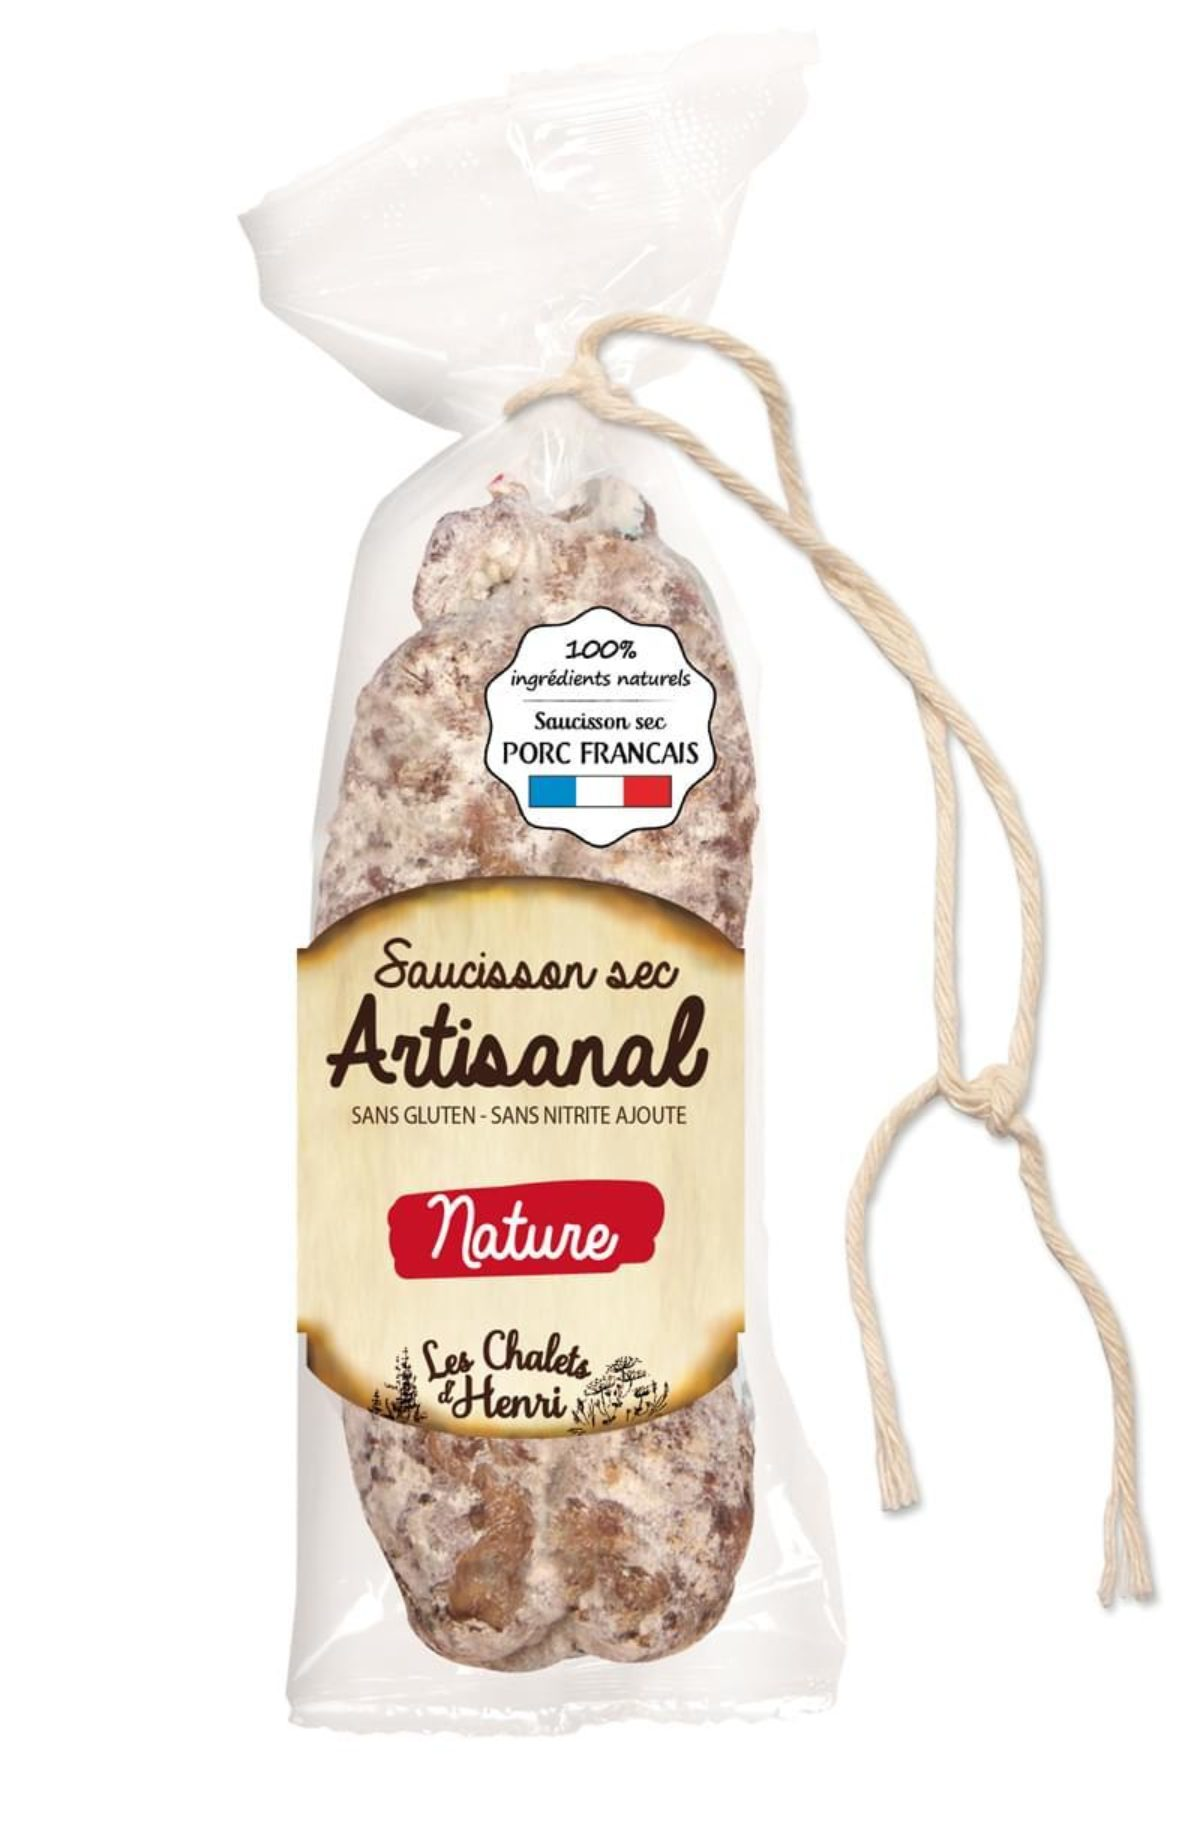 Octobre Saucisson sec artisanal Nature sticker min